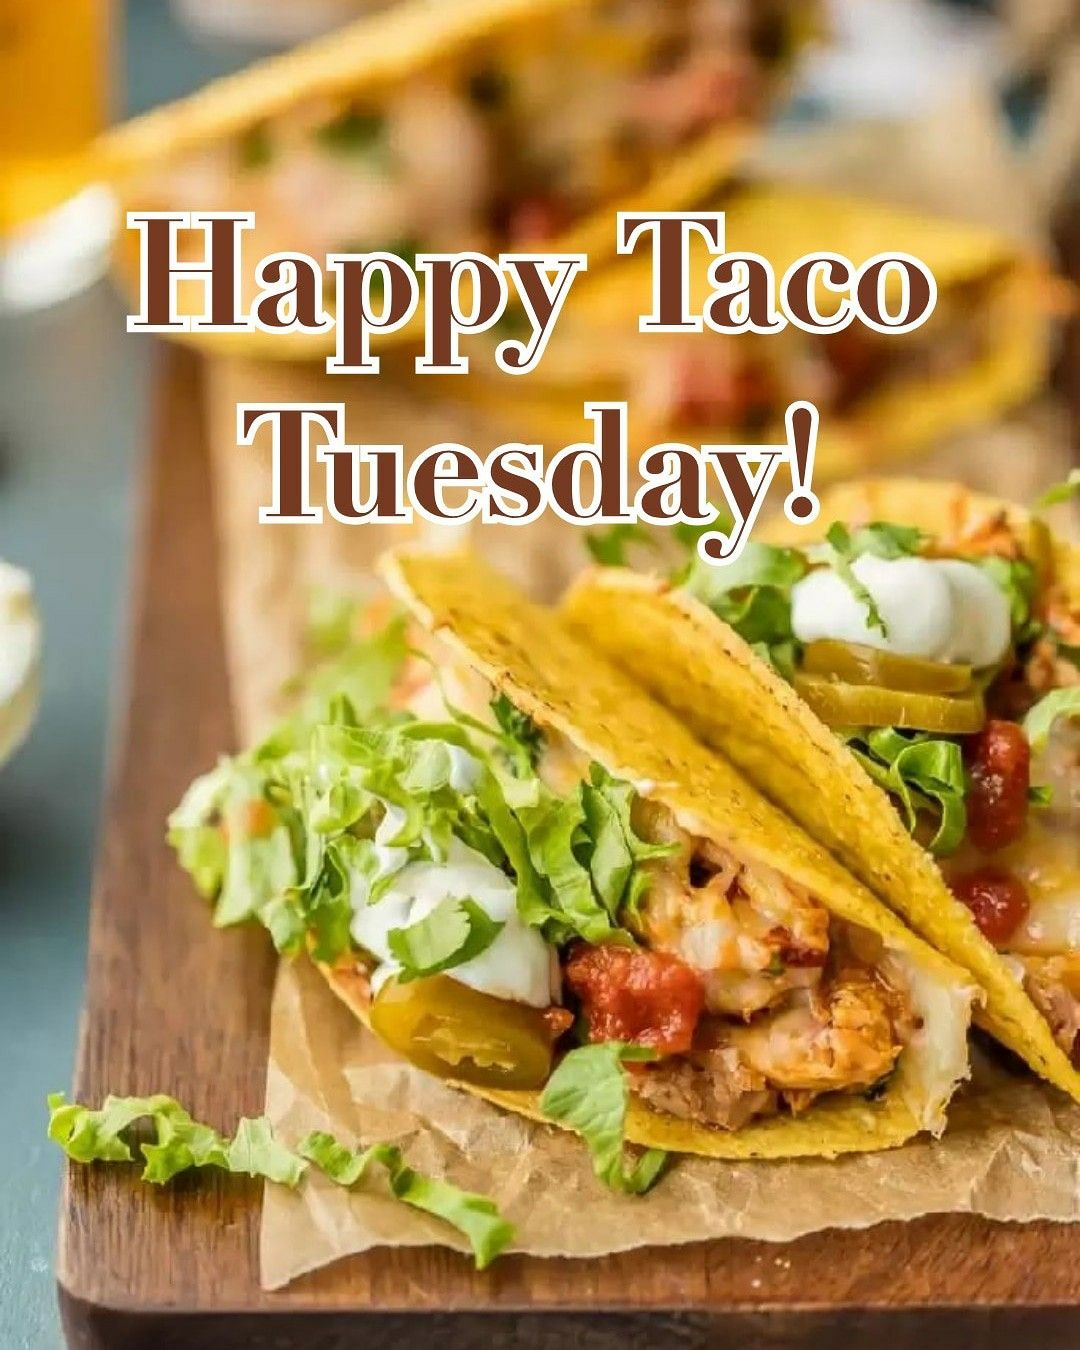 Happy Taco Tuesday Images : happy, tuesday, images, Days,, Weeks,, Months,